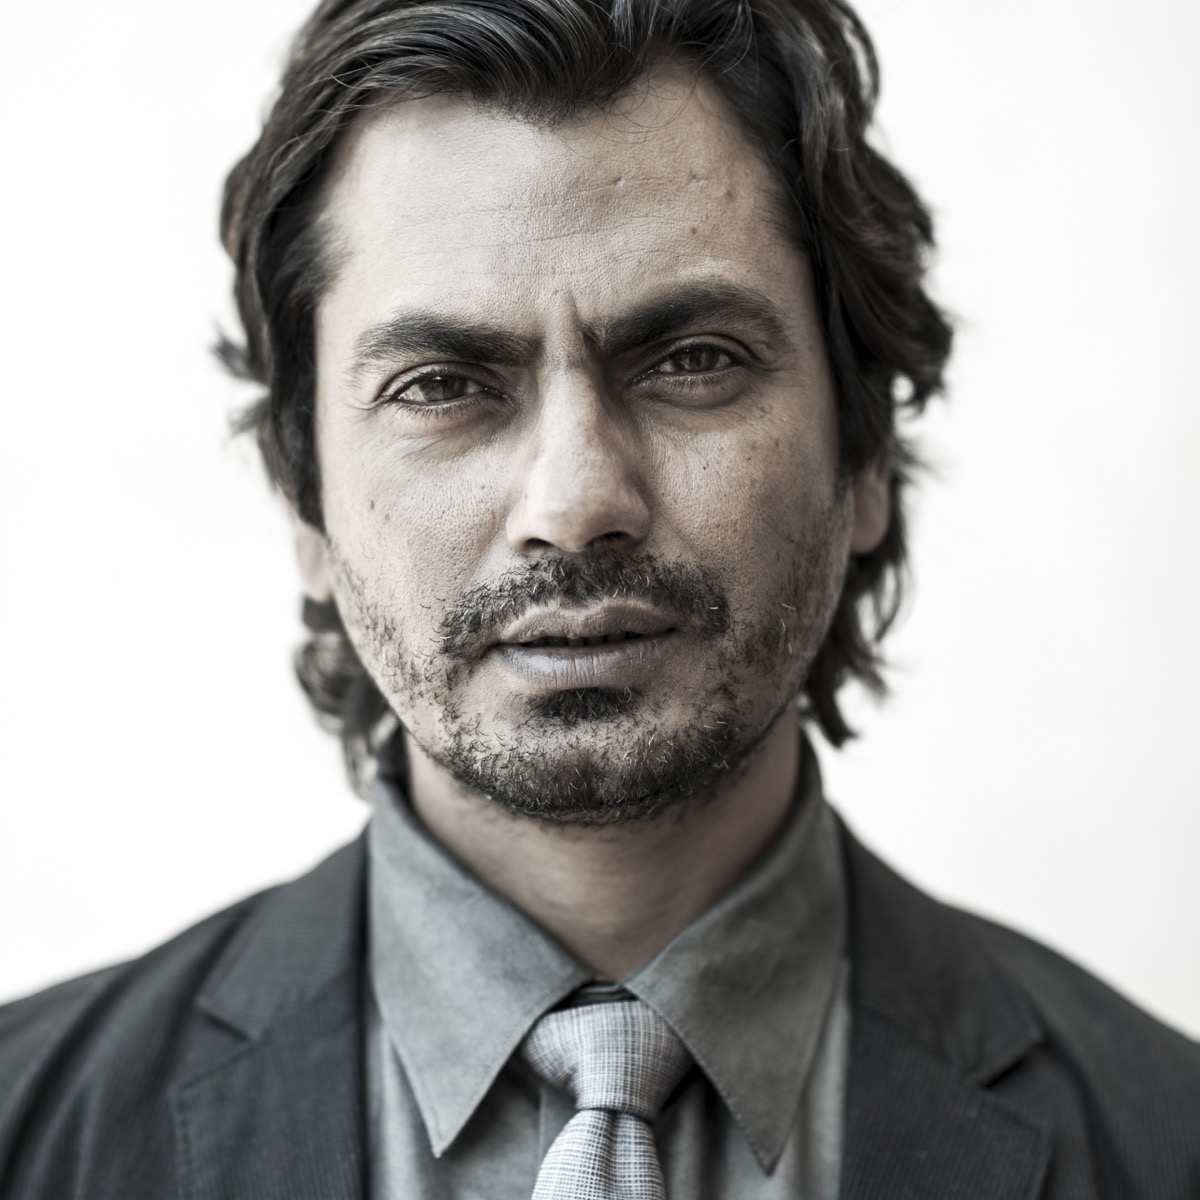 DUBAI, UNITED ARAB EMIRATES - DECEMBER 11: Actor Nawazuddin Siddiqui during a portrait session at the 10th Annual Dubai International Film Festival held at the Madinat Jumeriah Complex on December 11, 2013 in Dubai, United Arab Emirates. (Photo by Gareth Cattermole/Getty Images for DIFF)